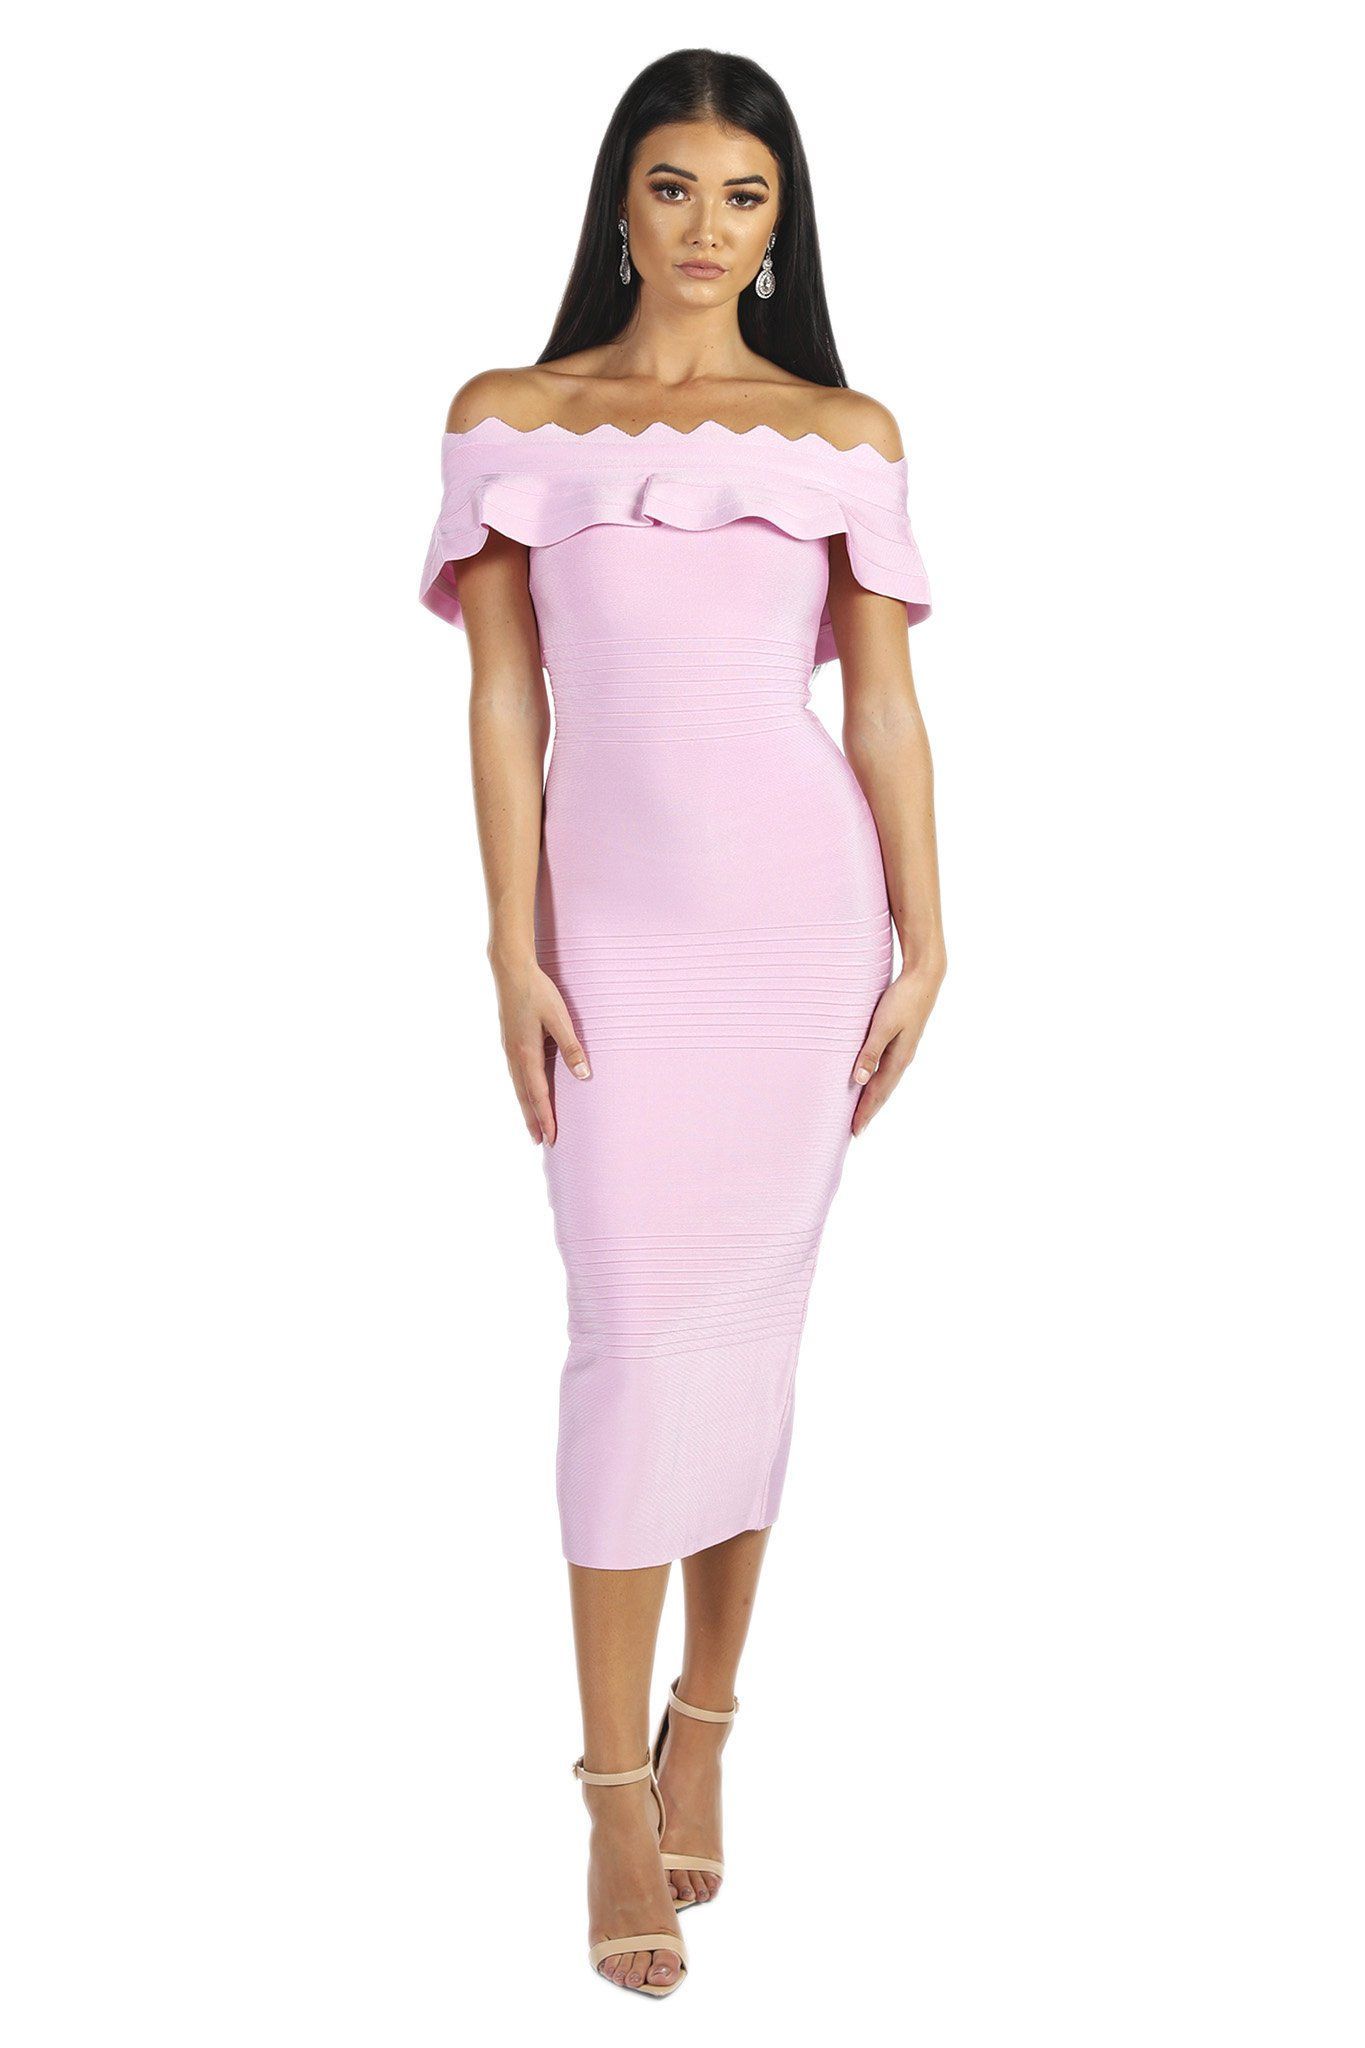 Light Pink Below Knee Length Bodycon Bandage Dress with Ruffled Off-The-Shoulder Neckline